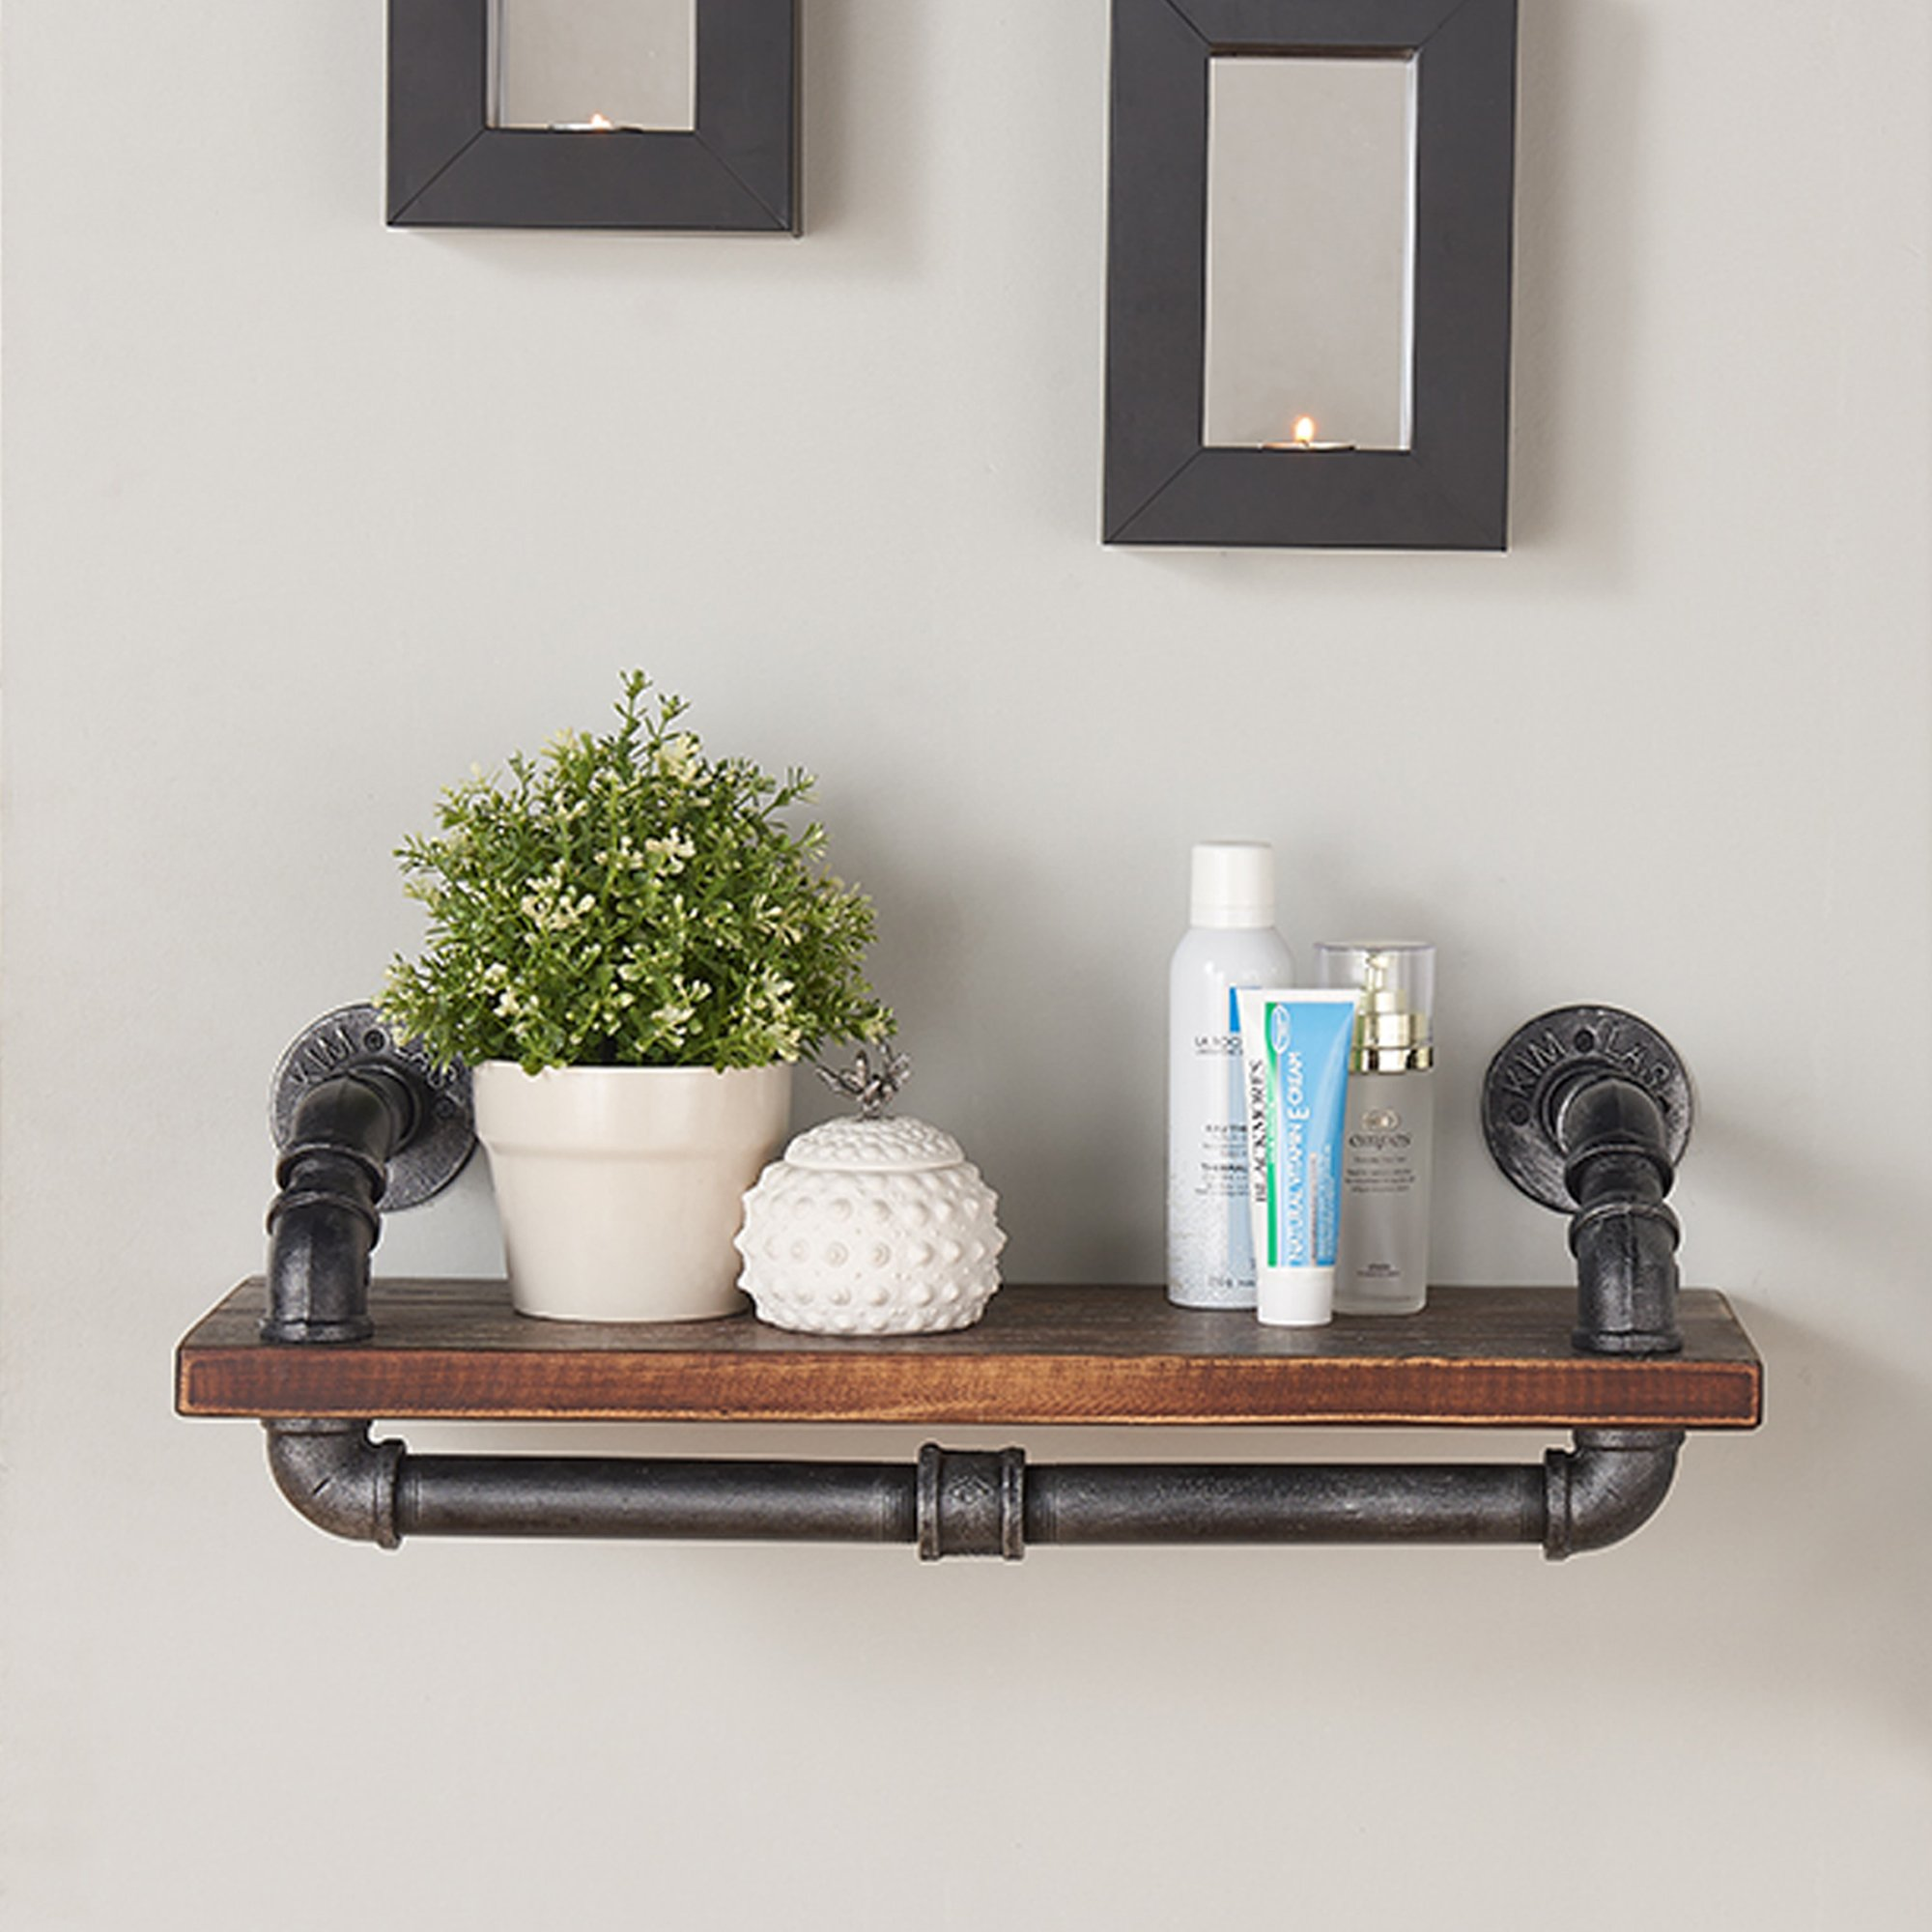 Armen Living LCISSH24 Isadore 24'' Accent Shelf in Walnut Wood Finish with Grey Piping by Armen Living (Image #2)